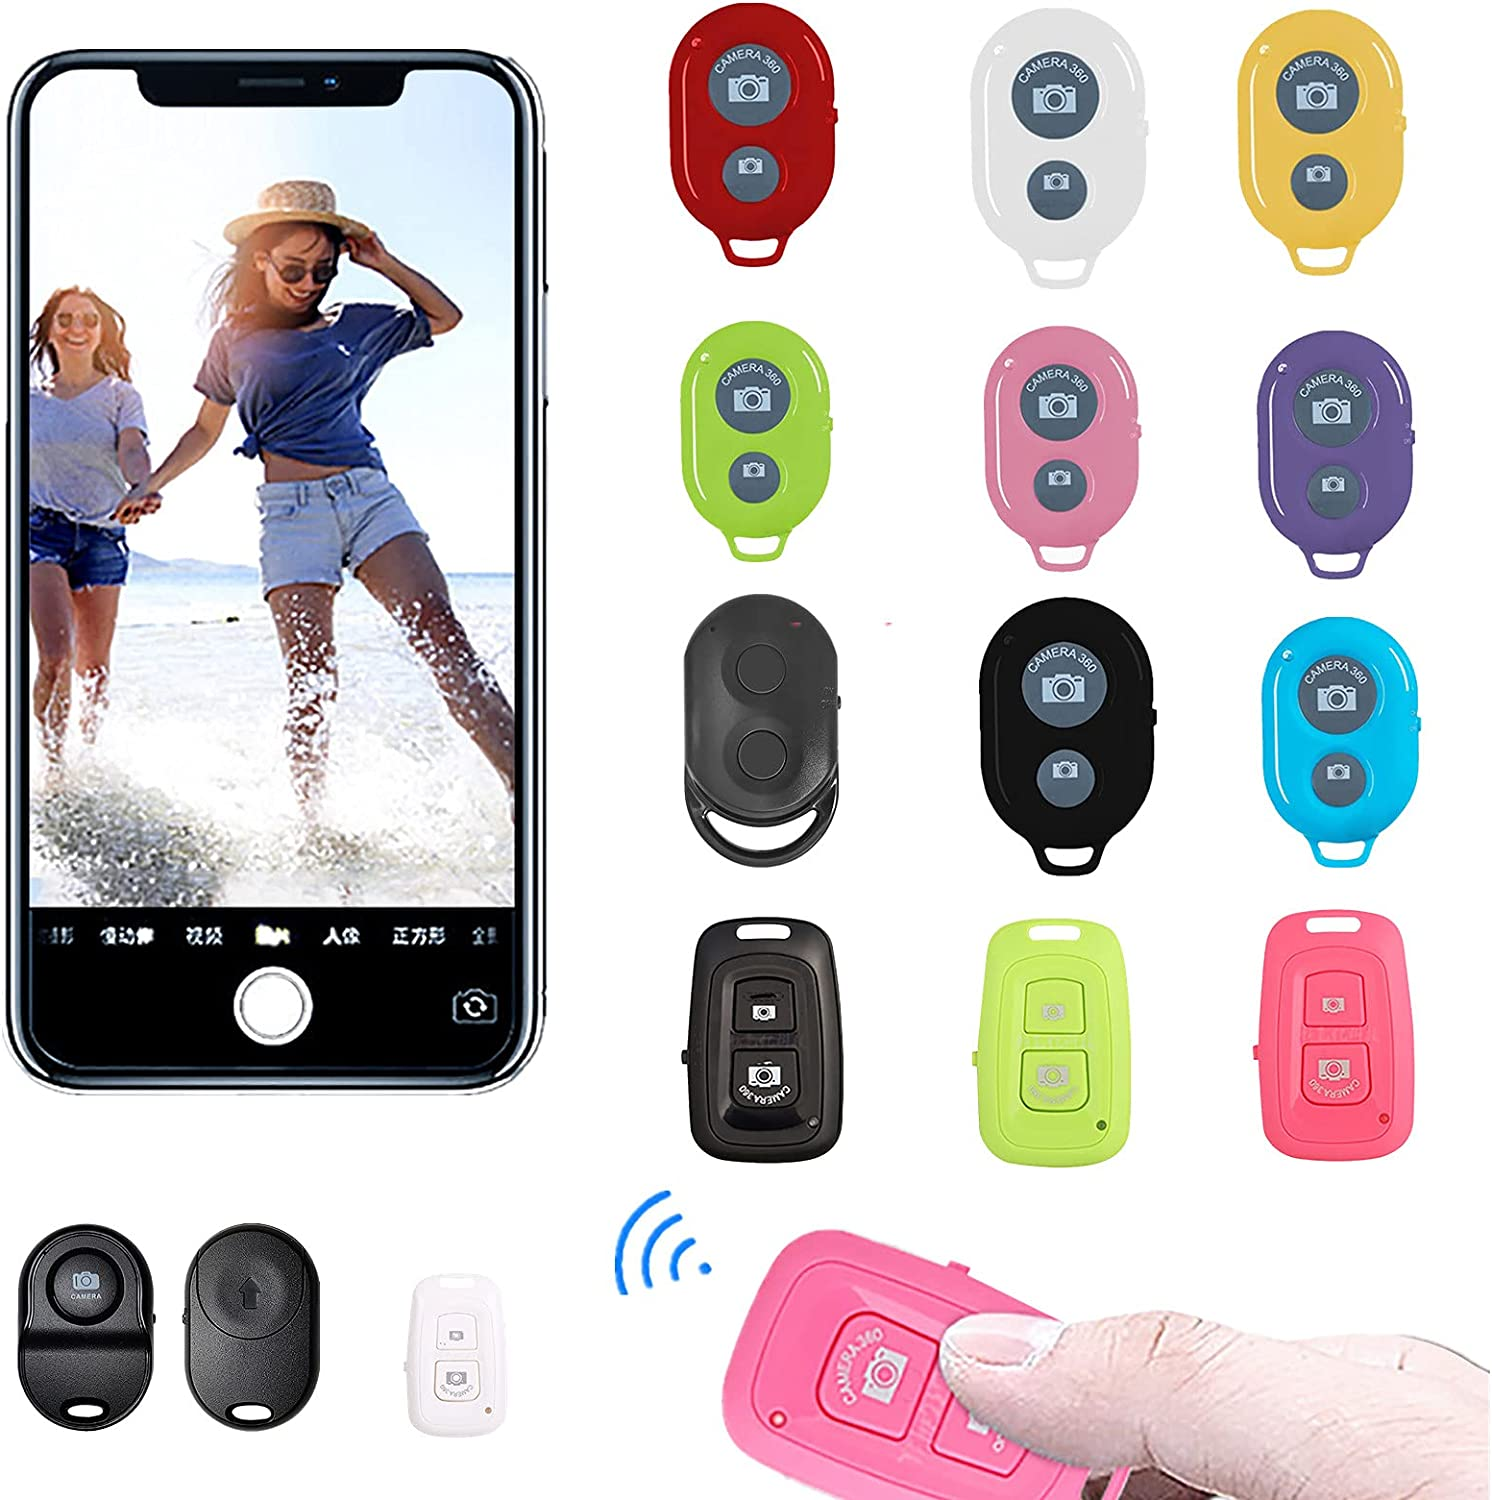 Shirazawa Camera Shutter Remote Control with Bluetooth Wireless Technology Compatible with iPhone/Most iOS and Android Smartphones, Create for Taking Photos and Videos/Selfies by Hands Free (B-Black)